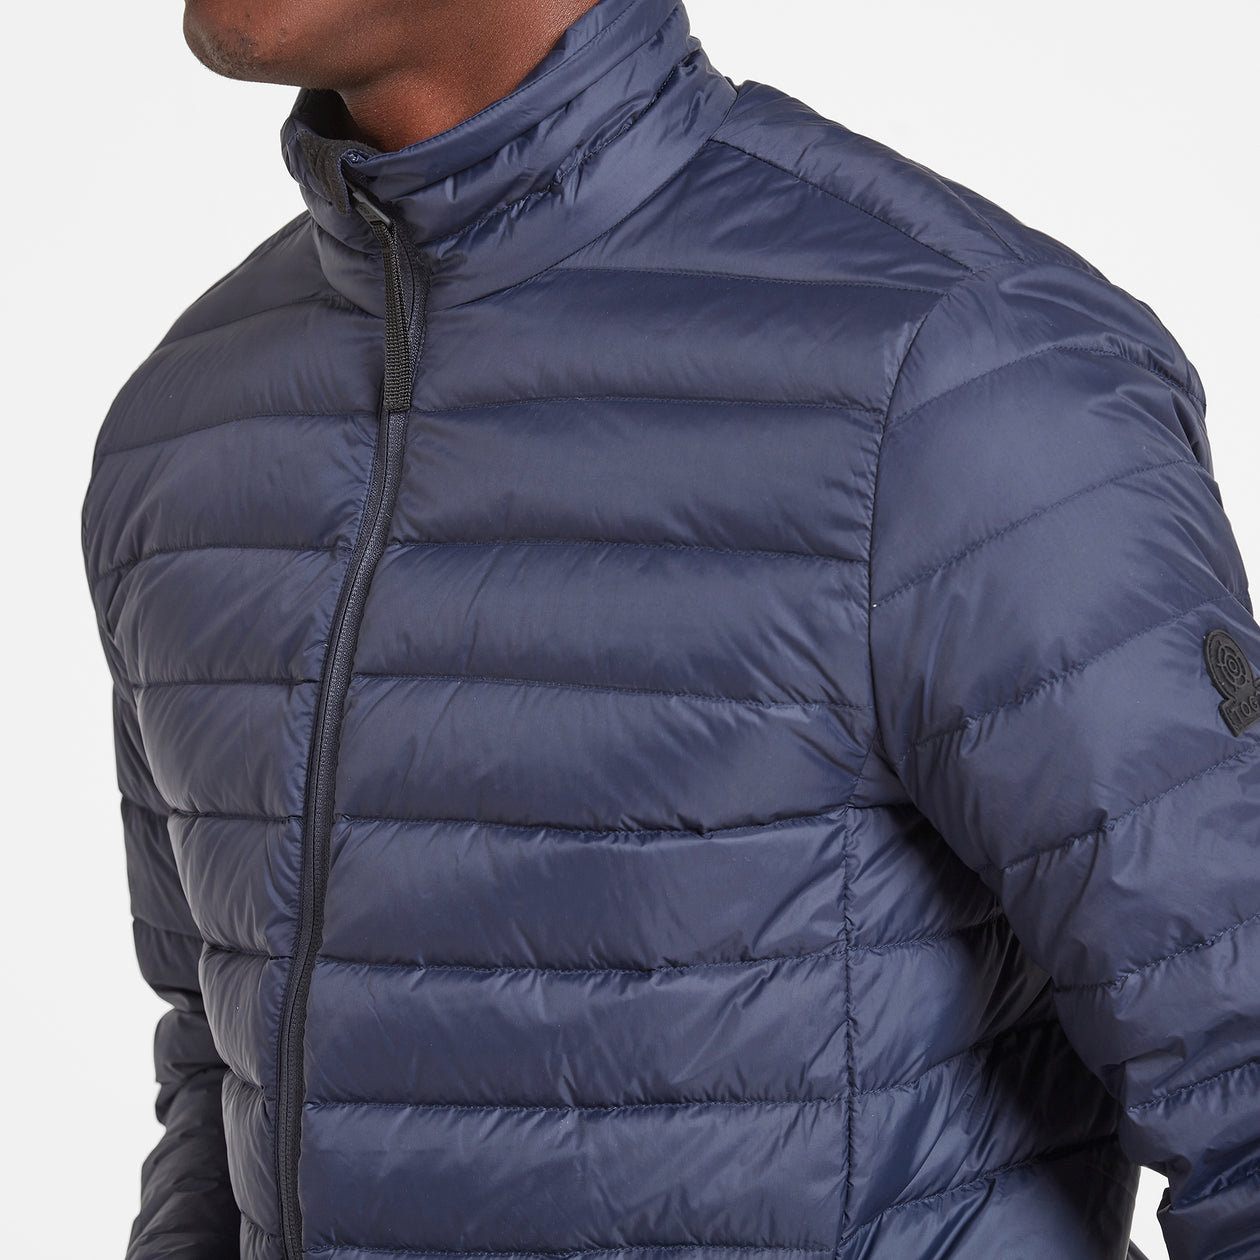 Elite Mens Down Jacket - Navy image 4